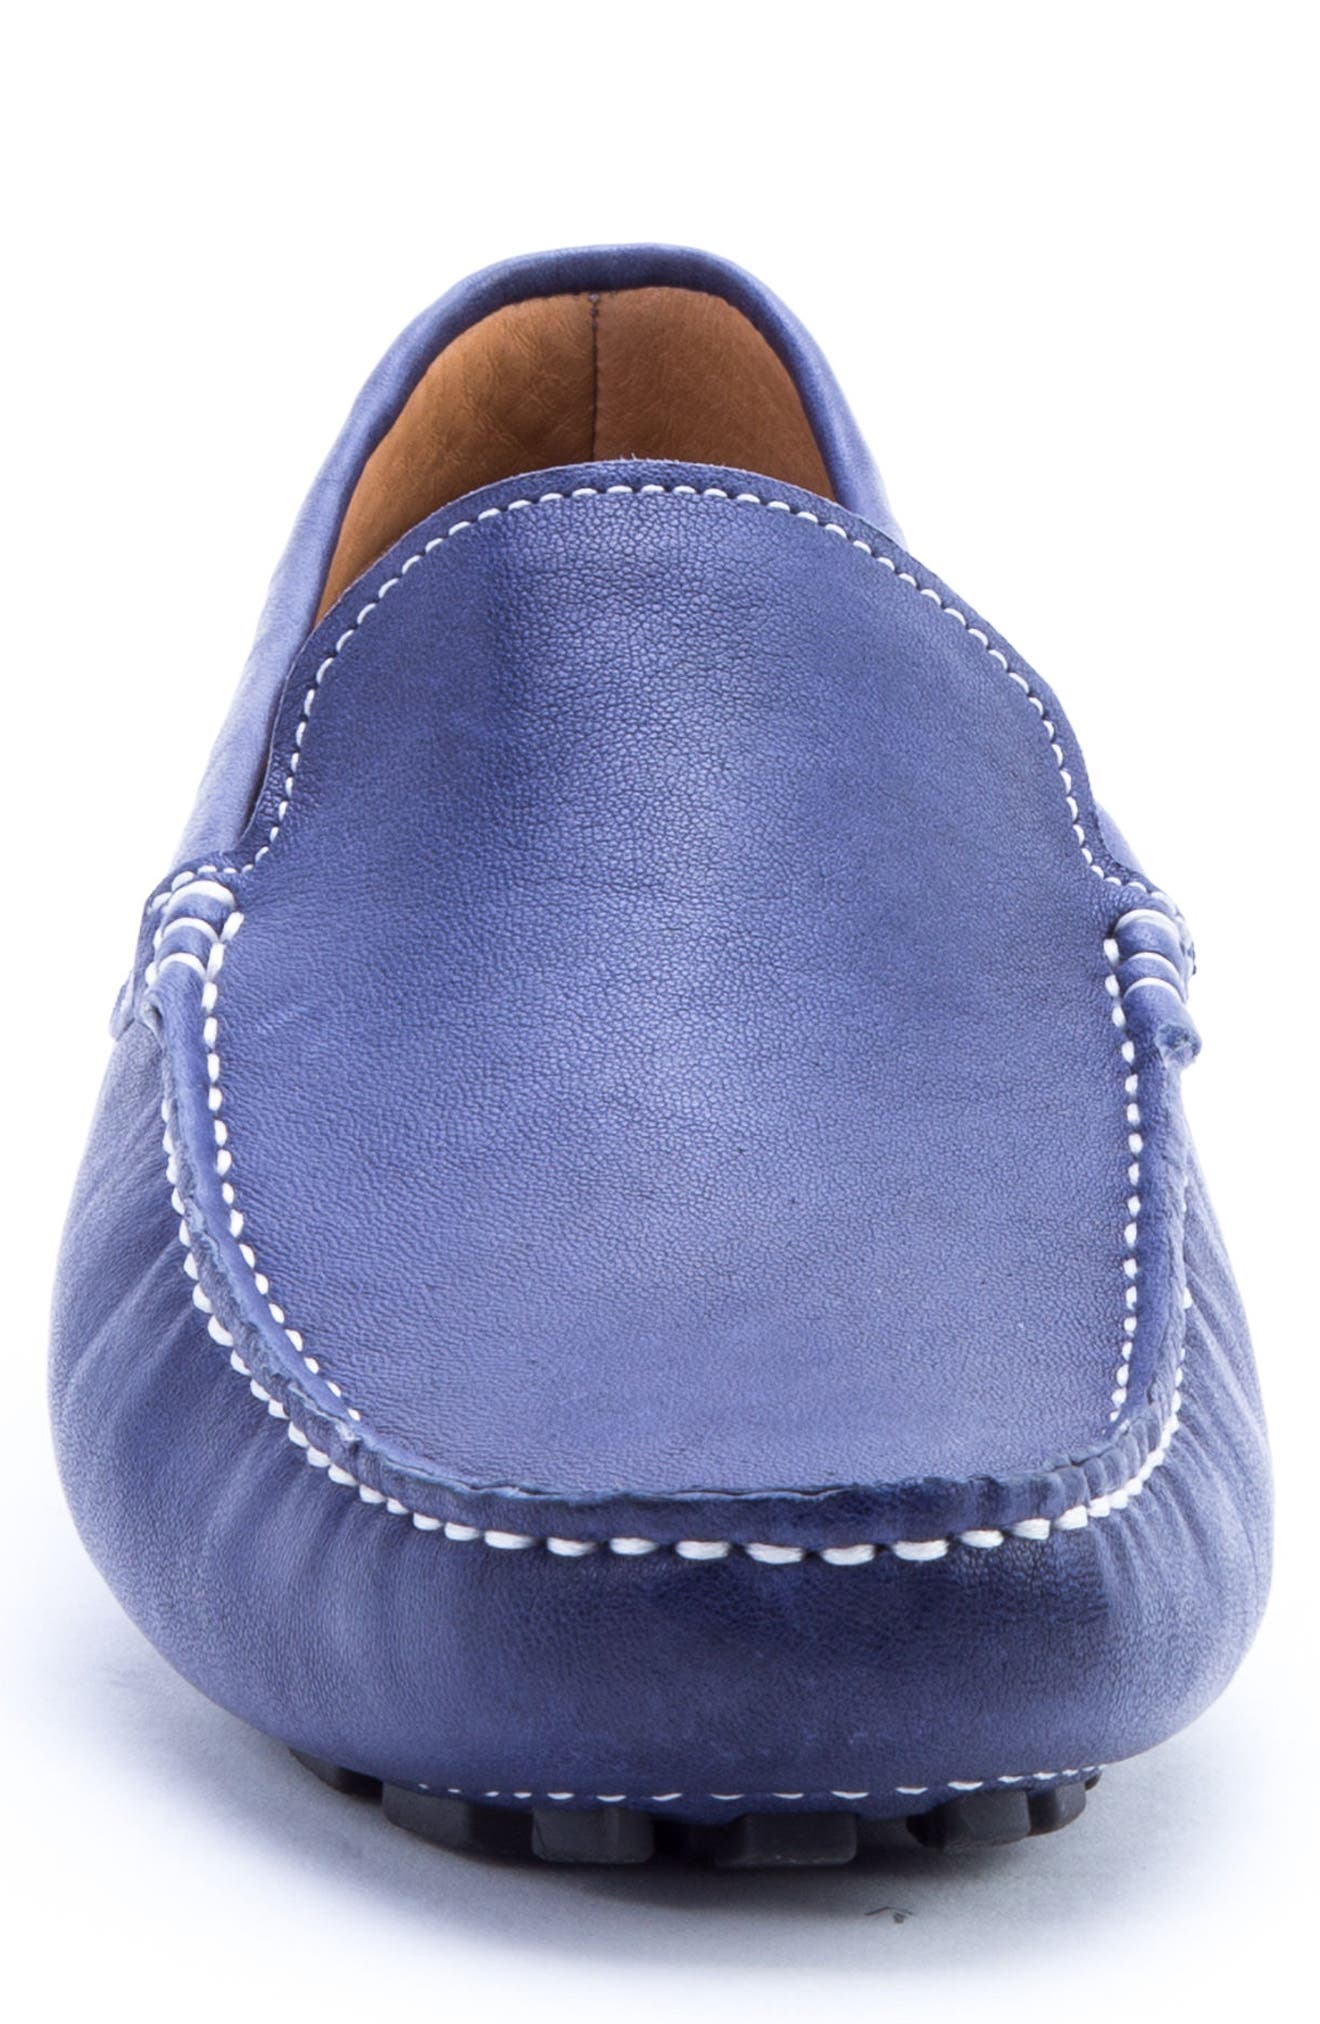 Picasso 3 Moc Toe Driving Loafer,                             Alternate thumbnail 4, color,                             Blue Leather